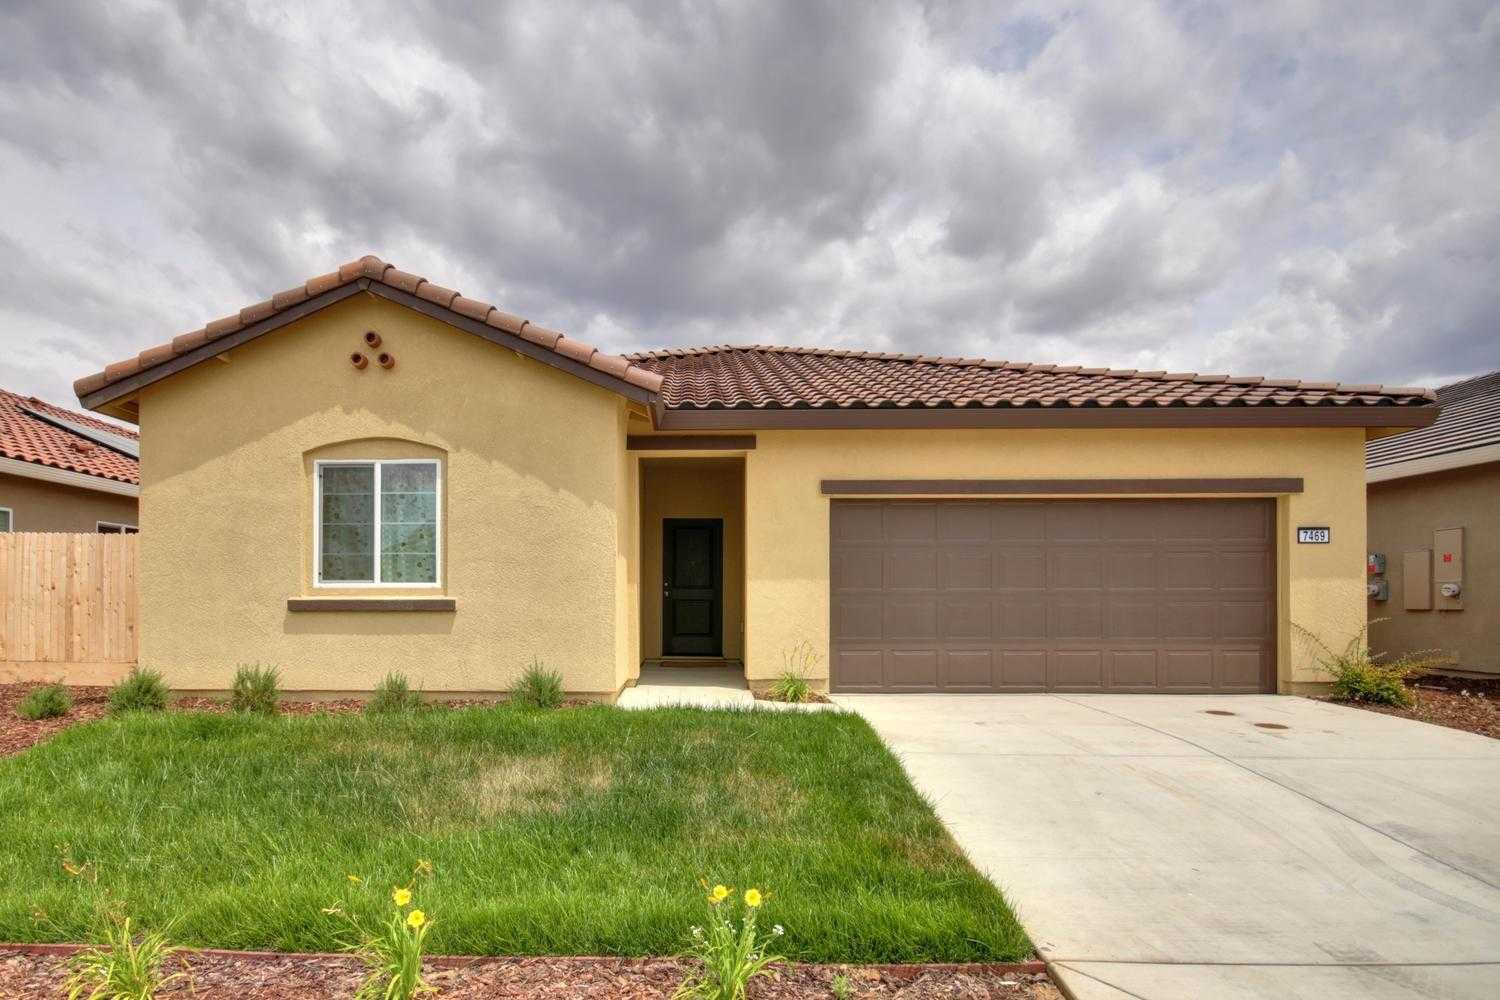 $449,900 - 4Br/2Ba -  for Sale in Rancho Murieta